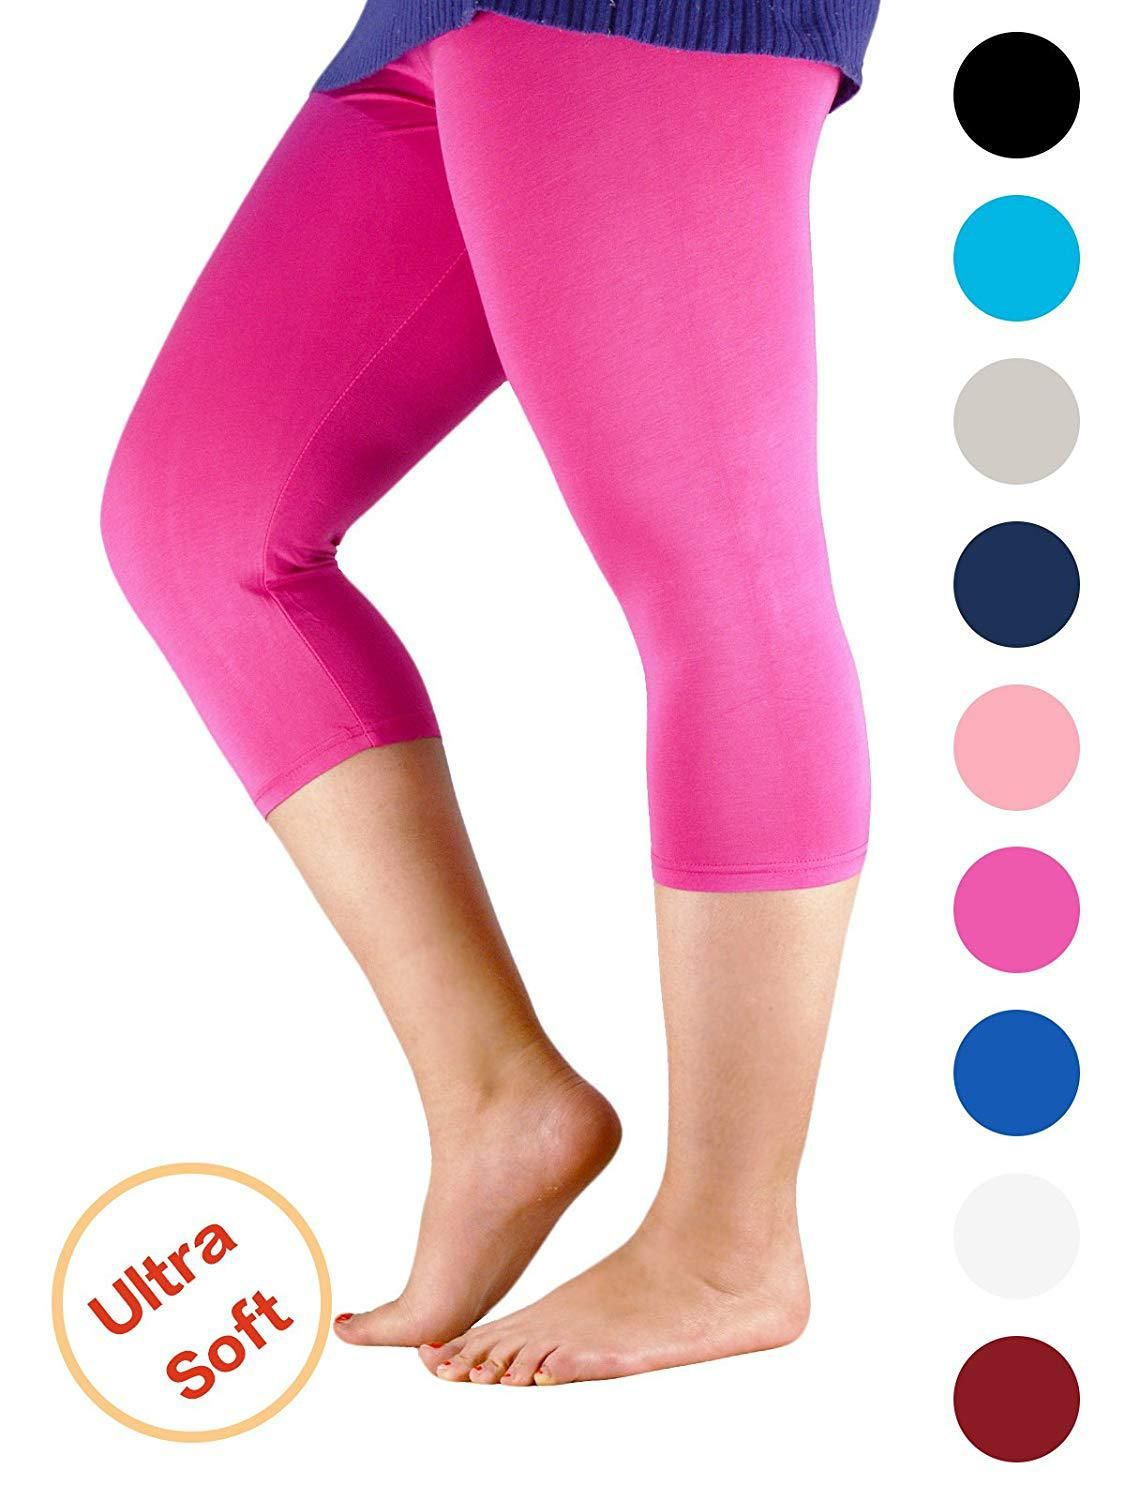 b5ceb254db4cde Premium Soft Light Comfy Fit Bamboo Capri Pants Under Dress Leggings for Women  Regular and Plus Size at Amazon Womens Clothing store, Amazon Affiliate  link.